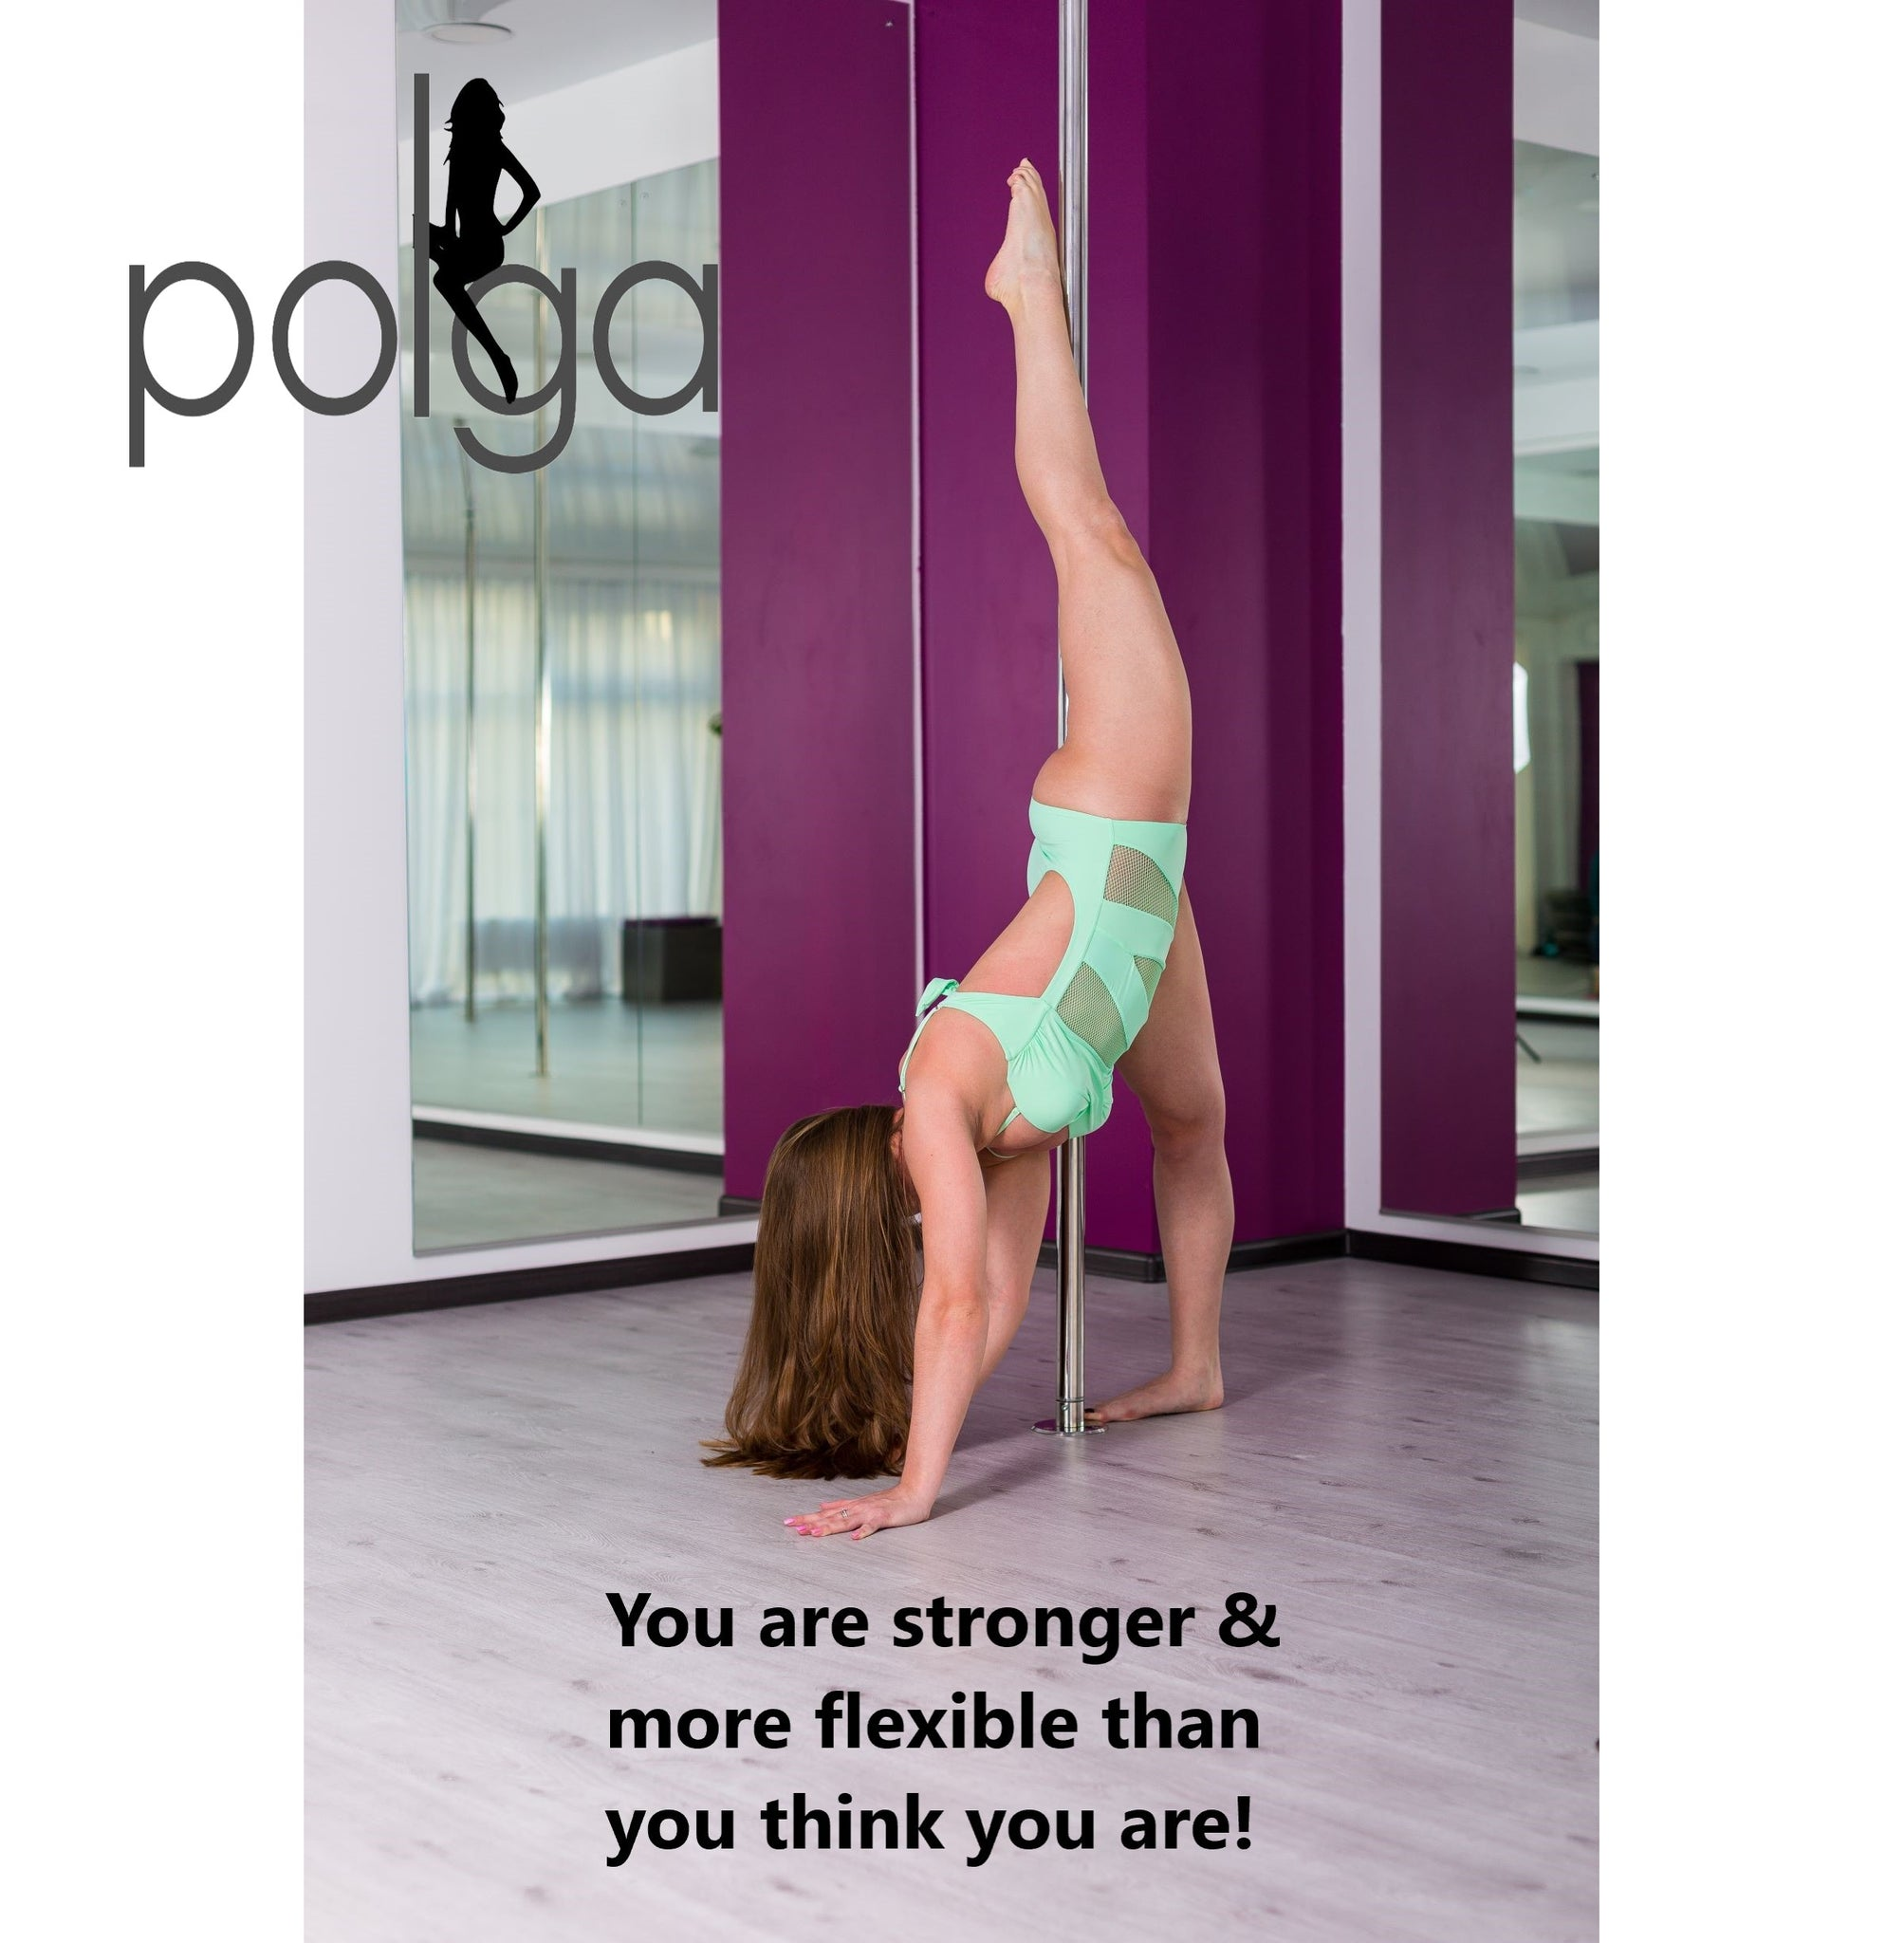 "Polga ""Pole into Spring"" 90 Day Flexibly Fit Challenge!"